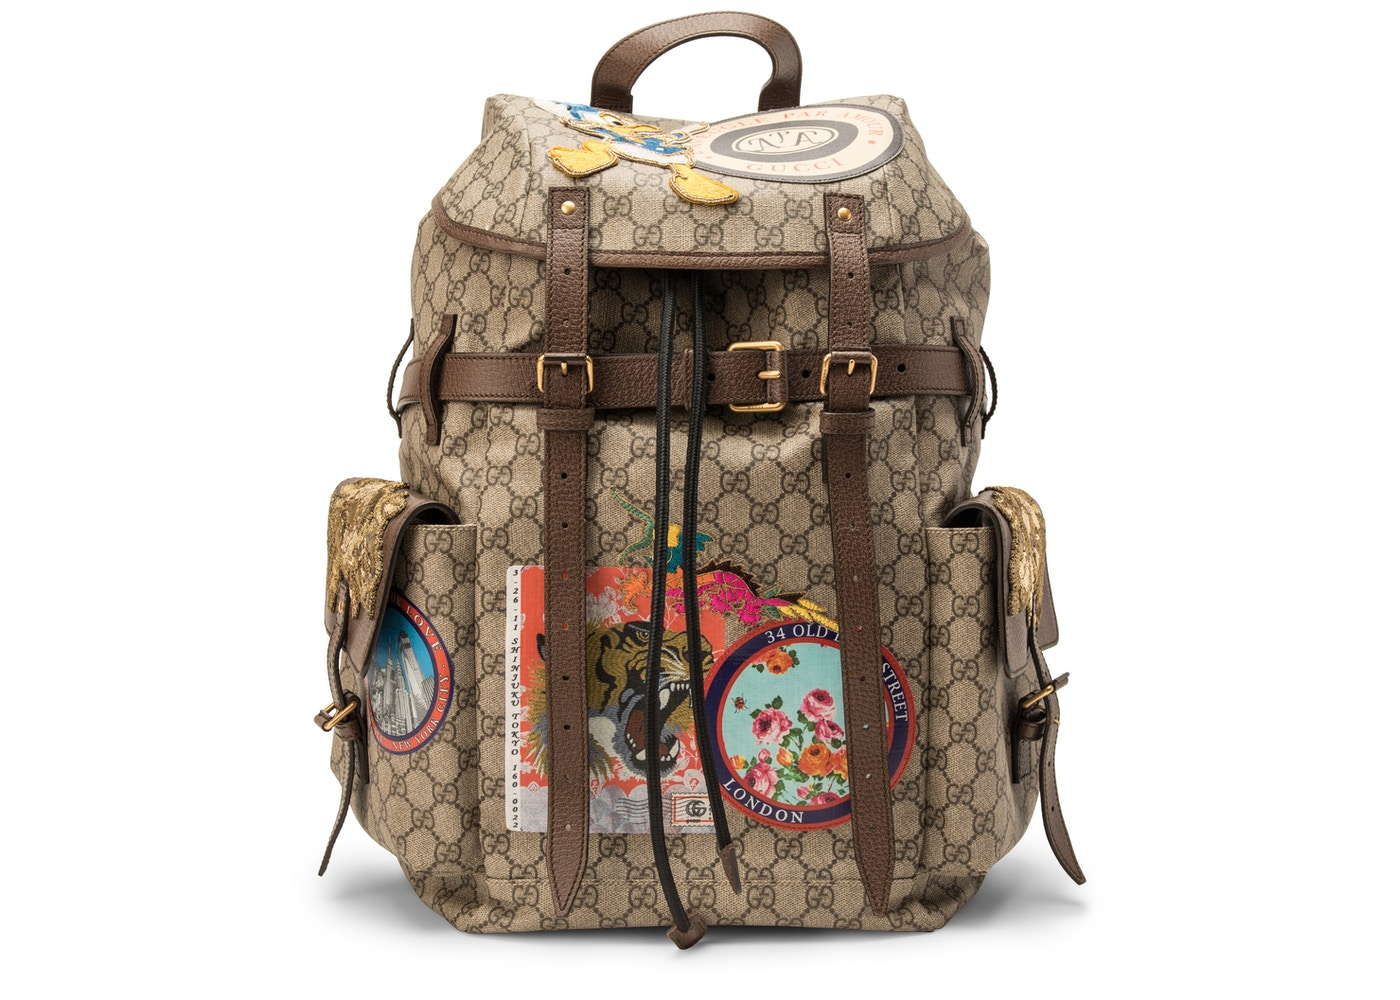 c4d429e5033 Buy   Sell Gucci Other Handbags - Average Sale Price